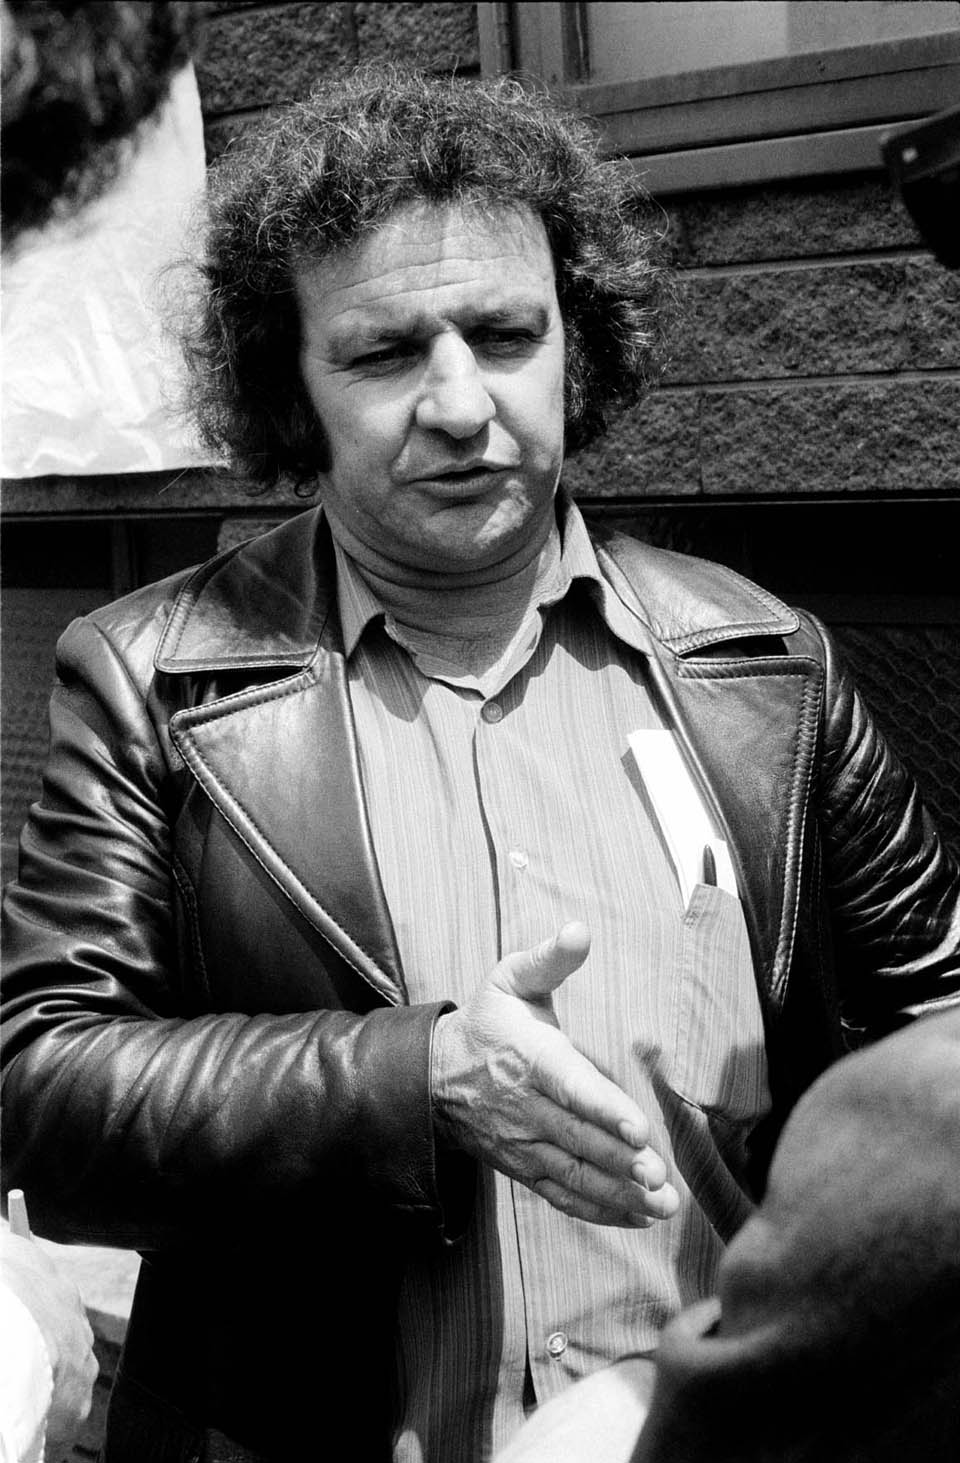 Jack Mundey, Militant communist and trade unionist, led the historic NSW BLF from 1968 - 1975